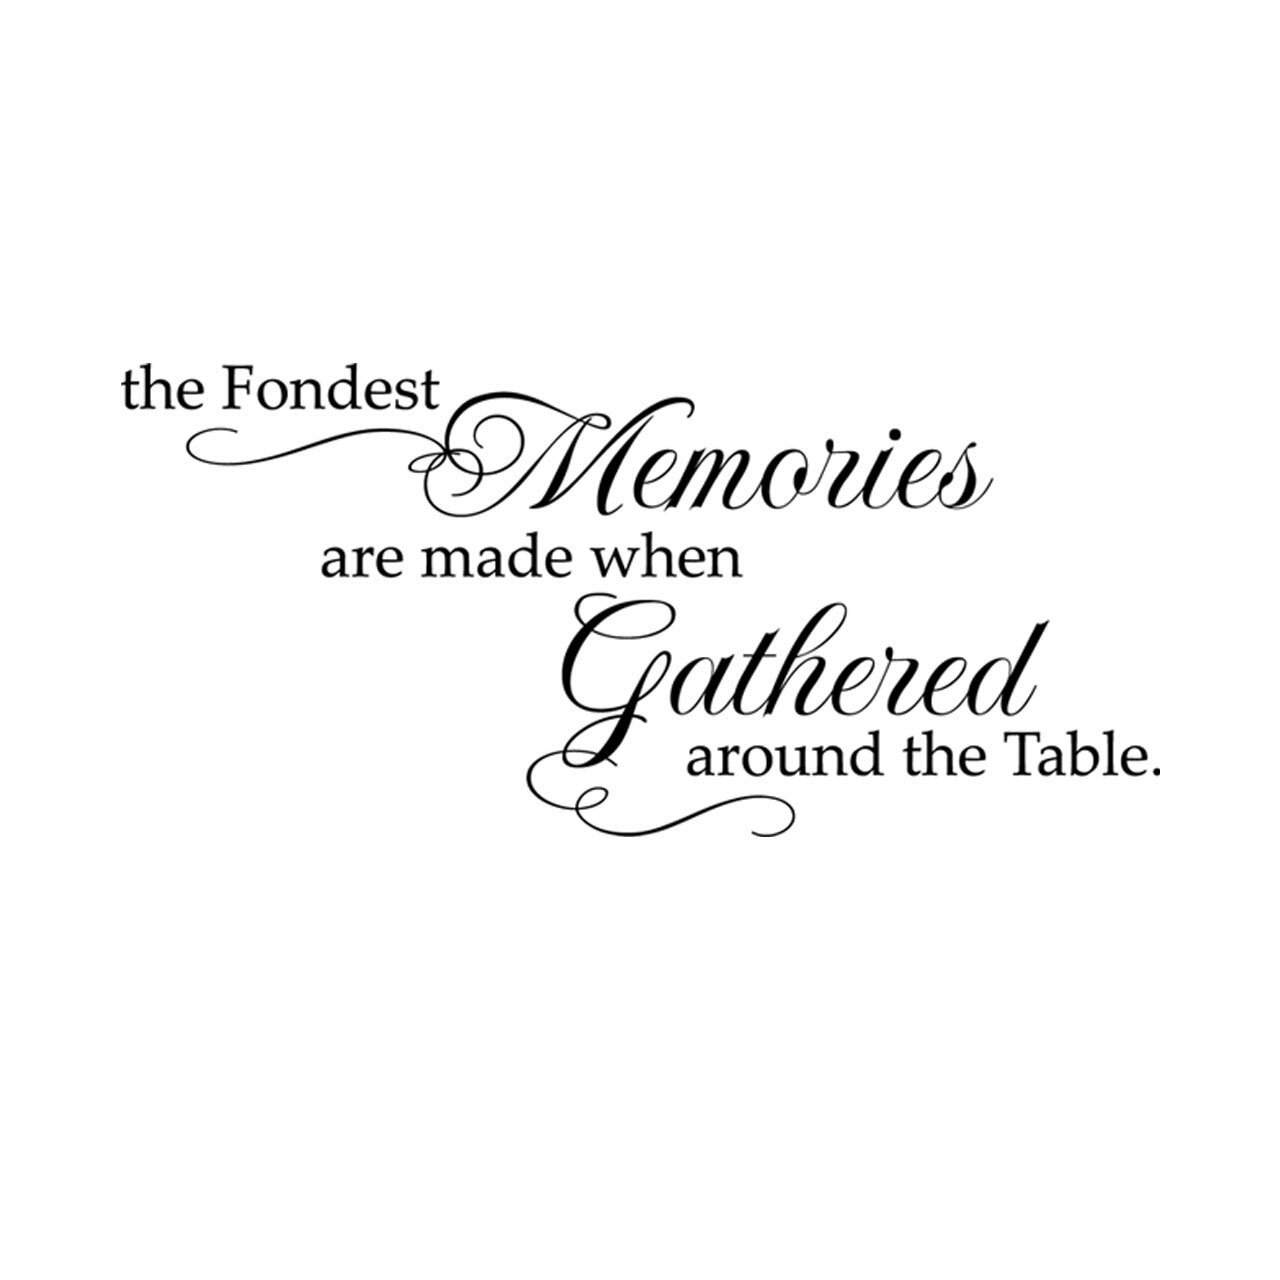 The fondest memories are made when gathered around the table written in black on a white background